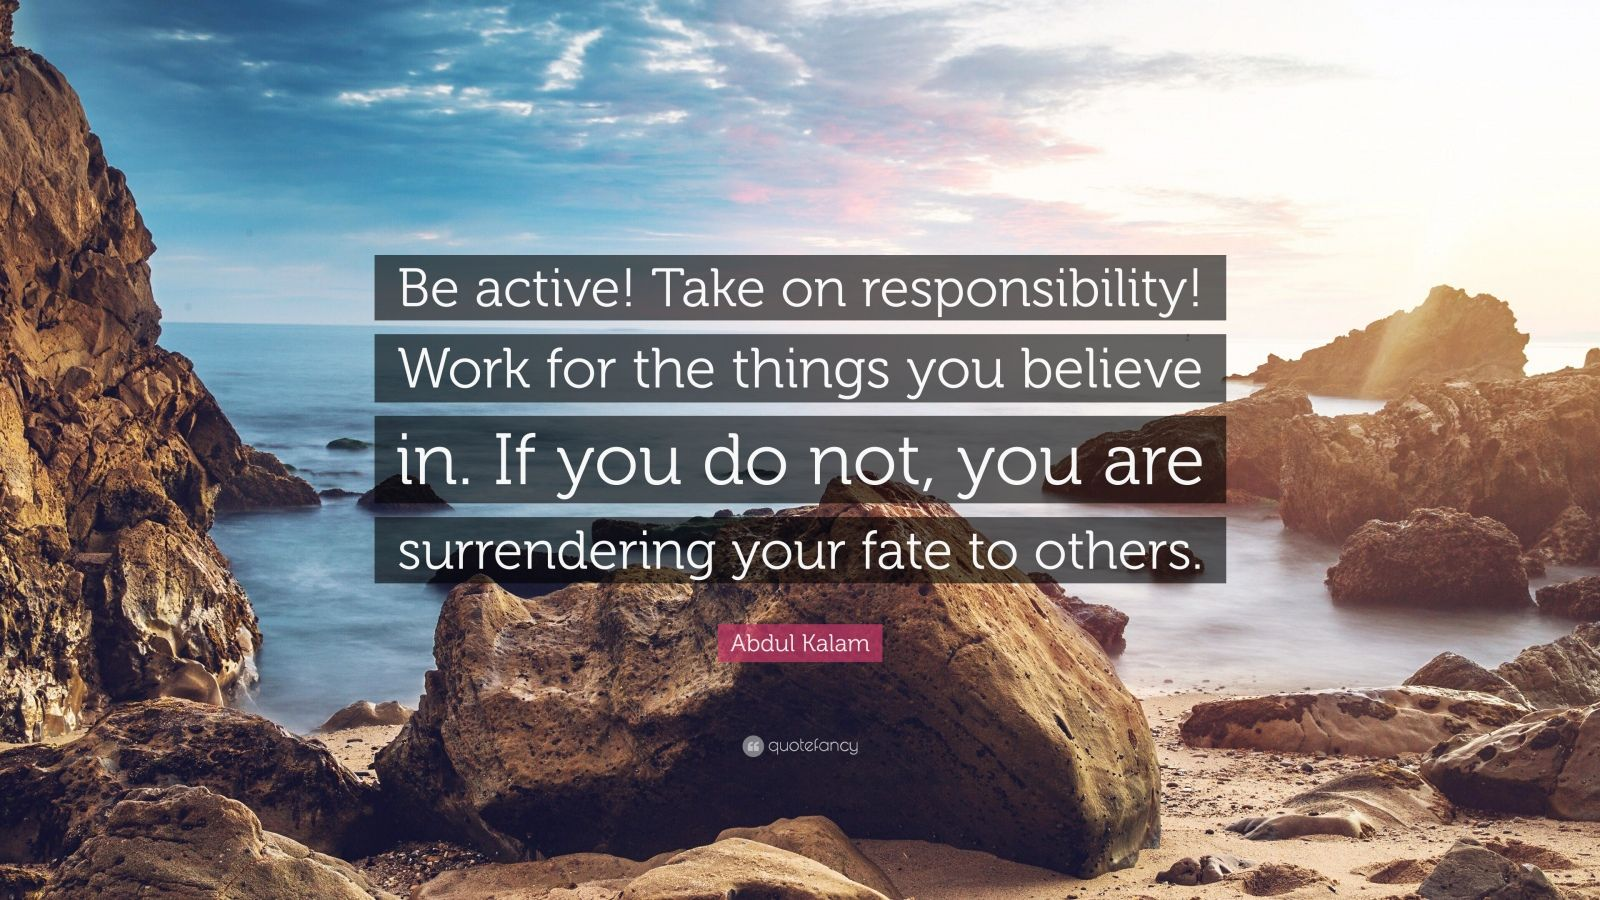 """Abdul Kalam Quote: """"Be active! Take on responsibility! Work for the things you believe in. If you do not, you are surrendering your fate to others."""""""